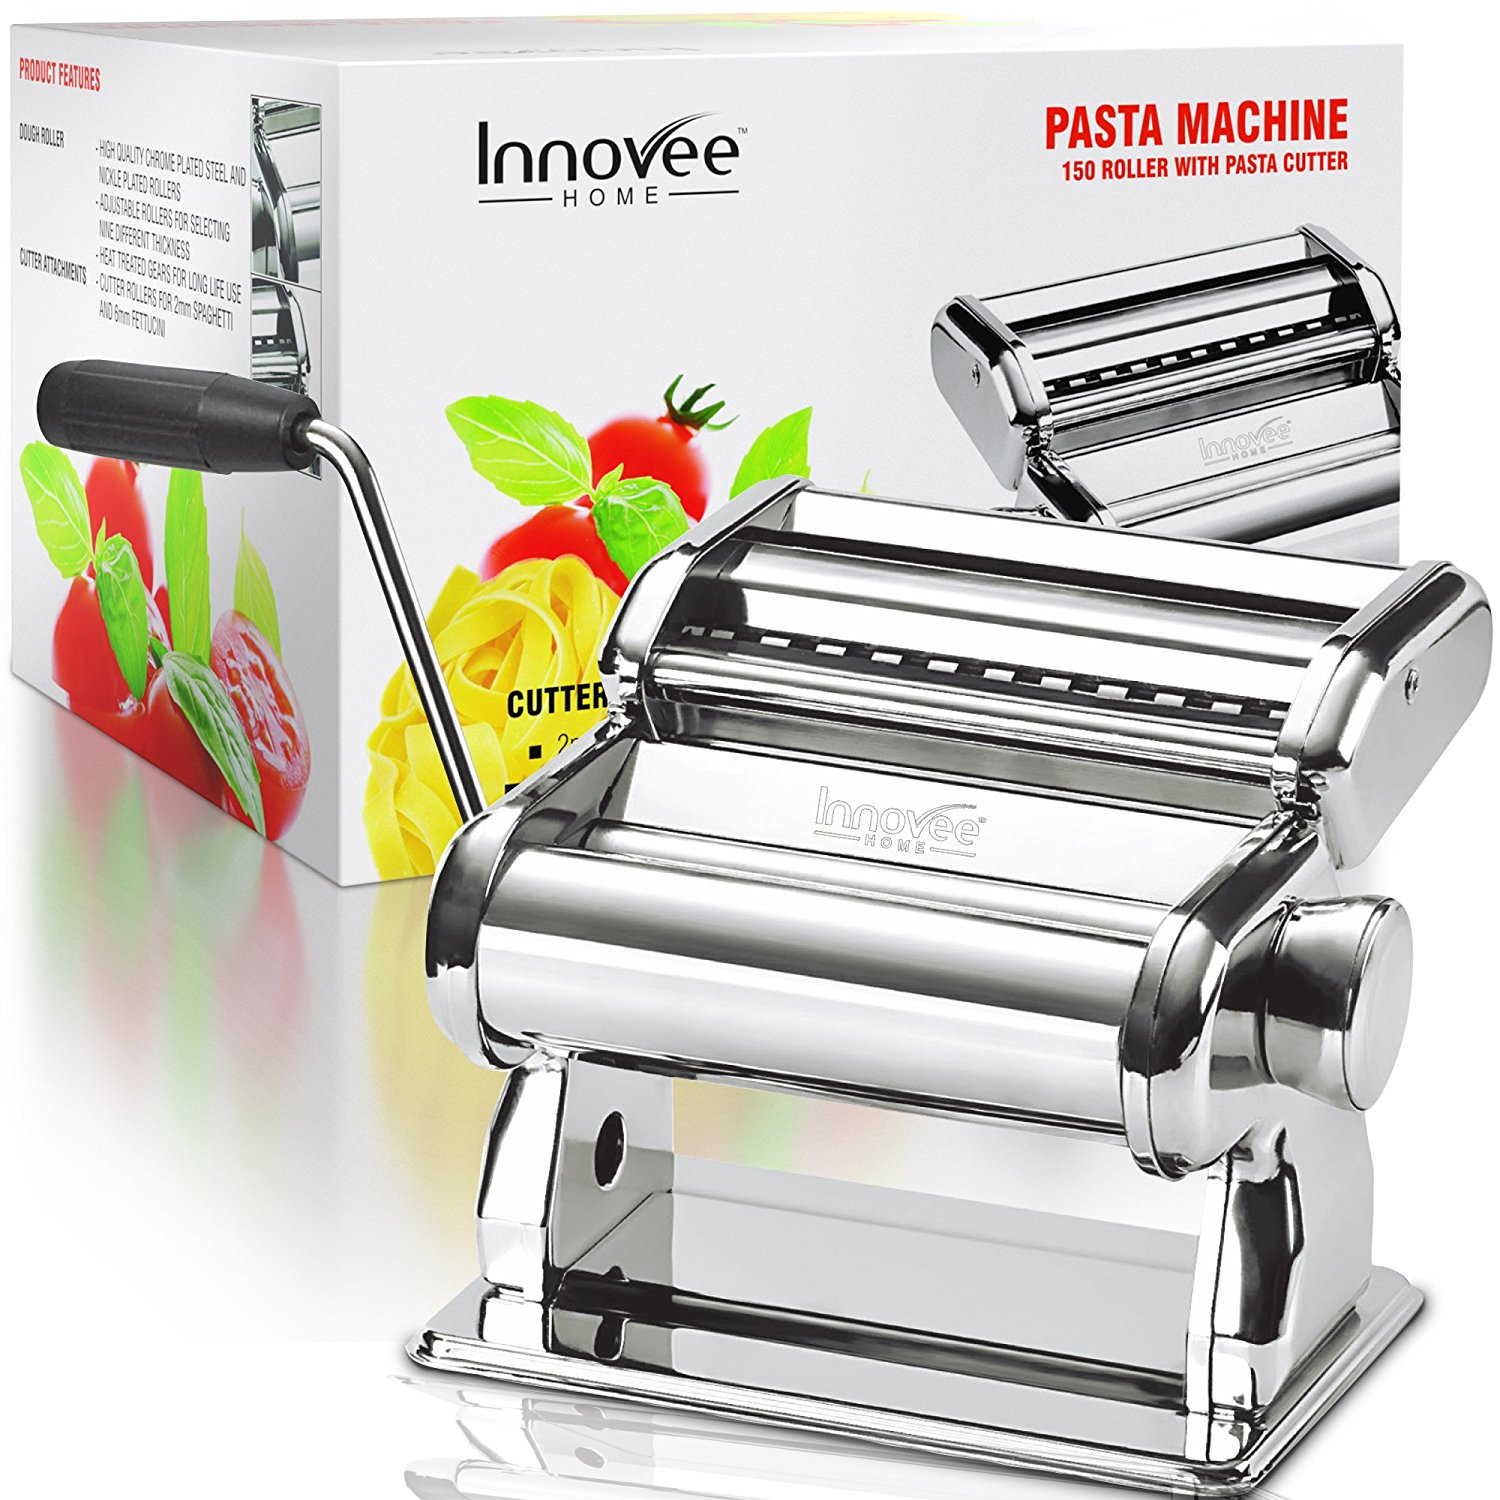 Dough Imperial Pasta Maker